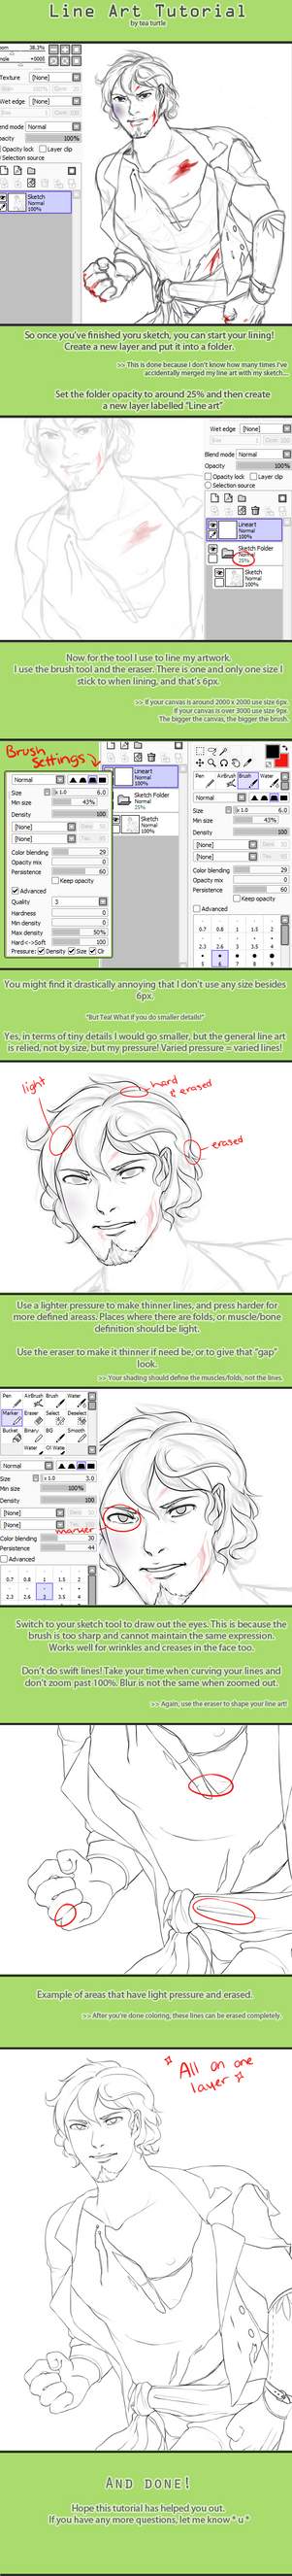 Line art Tutorial by tea-ram